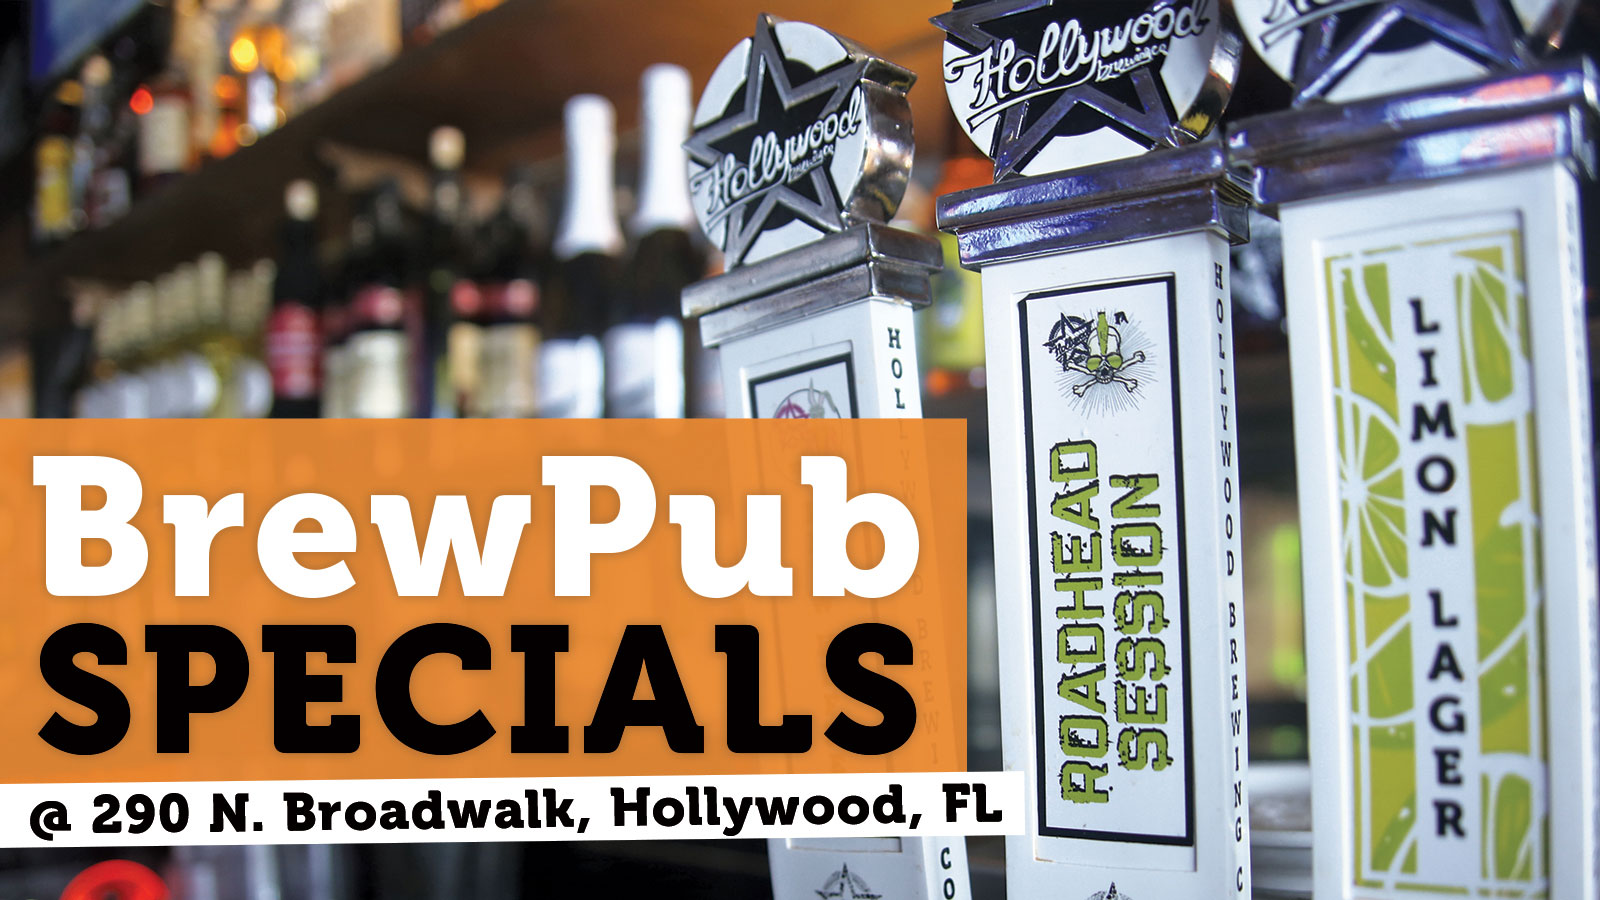 http://hollywood.beer/wp-content/uploads/2017/09/Specials_Banner_HollywoodBrewing_1600.jpg